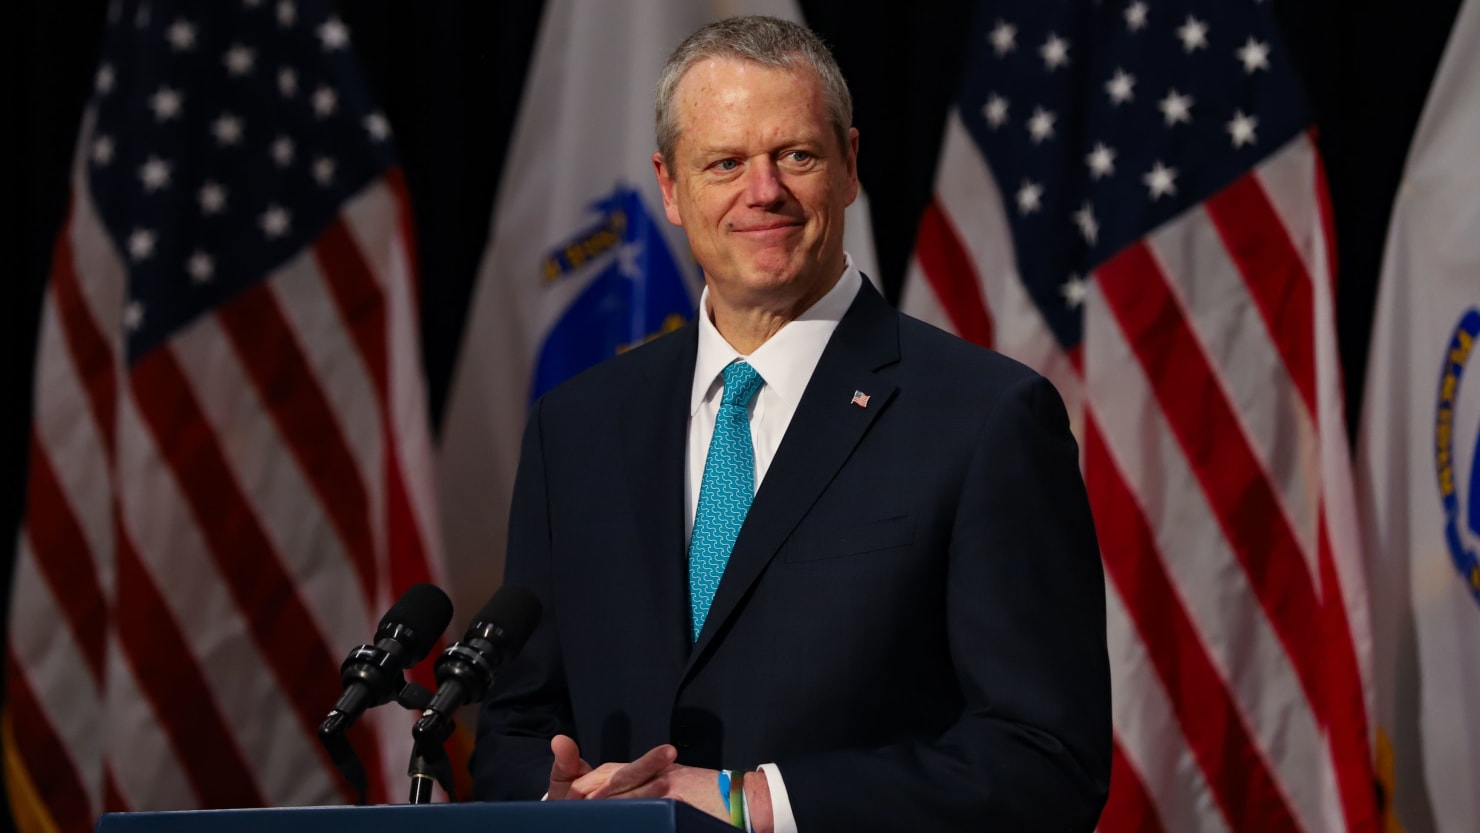 Republican Gov. Charlie Baker Chokes Up While Excoriating Trump's Call to 'Dominate' Protesters